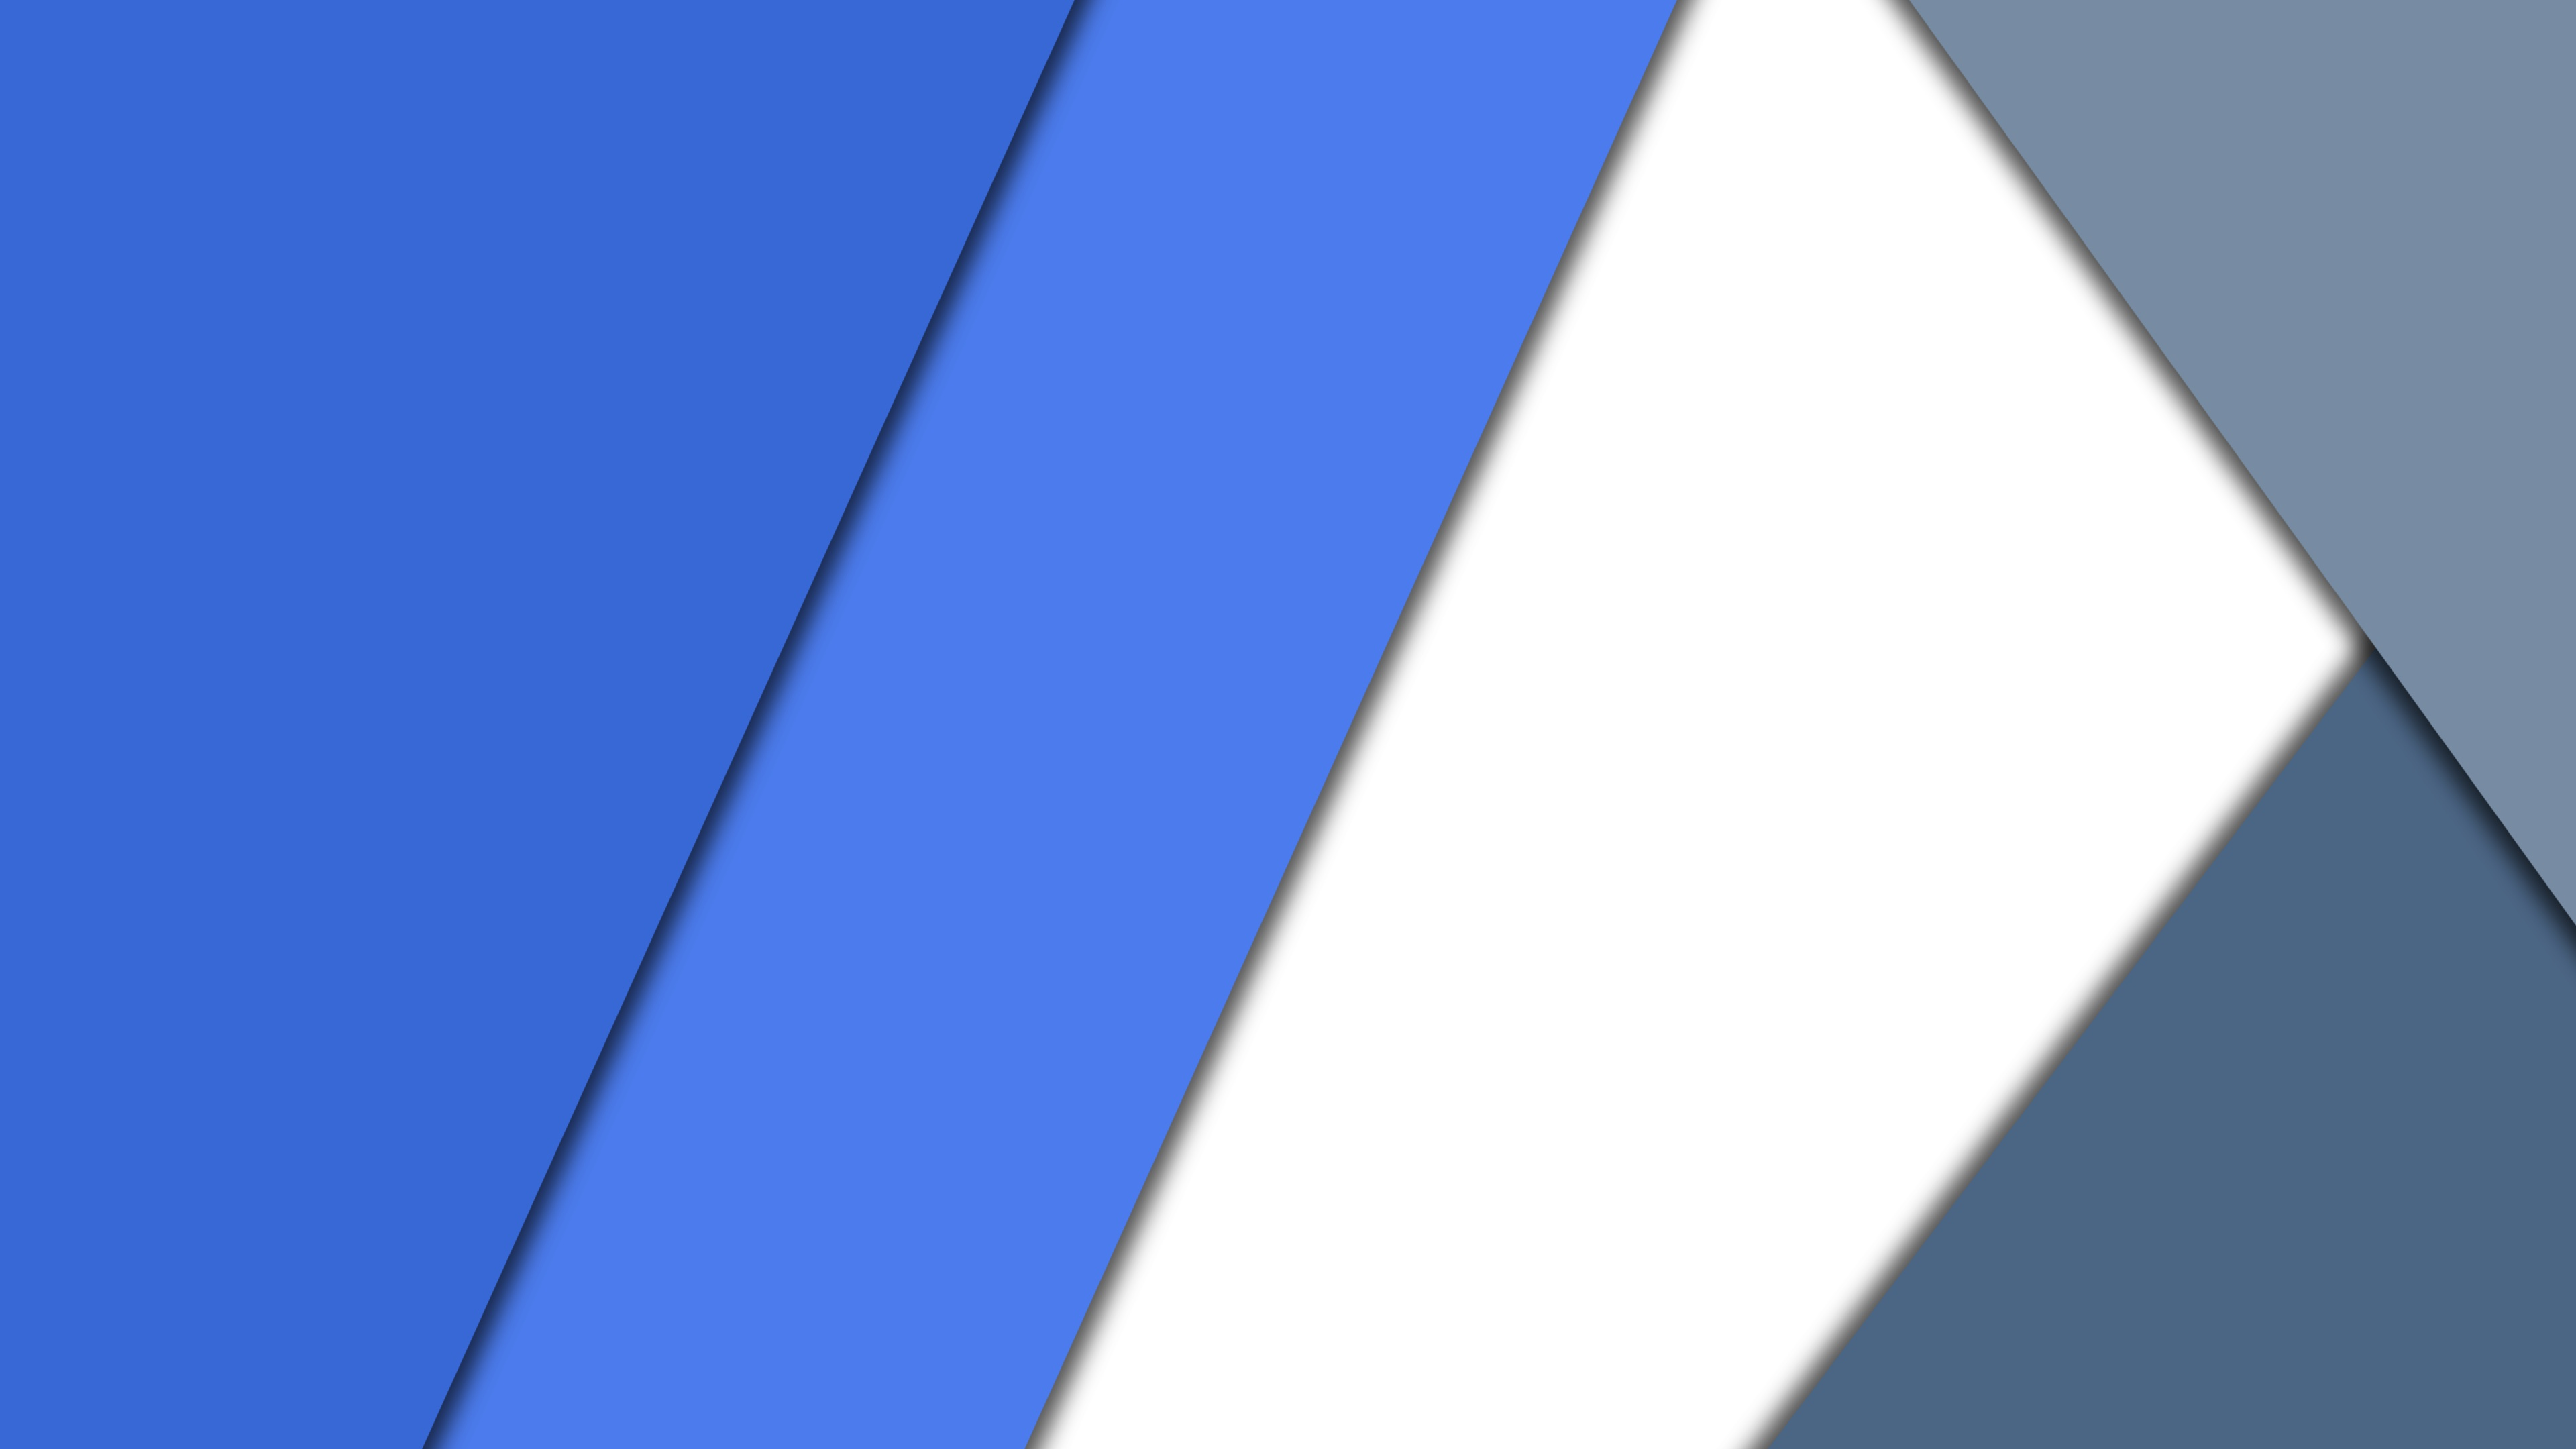 Blue white material design 4k hd abstract 4k wallpapers for Material design wallpaper 4k